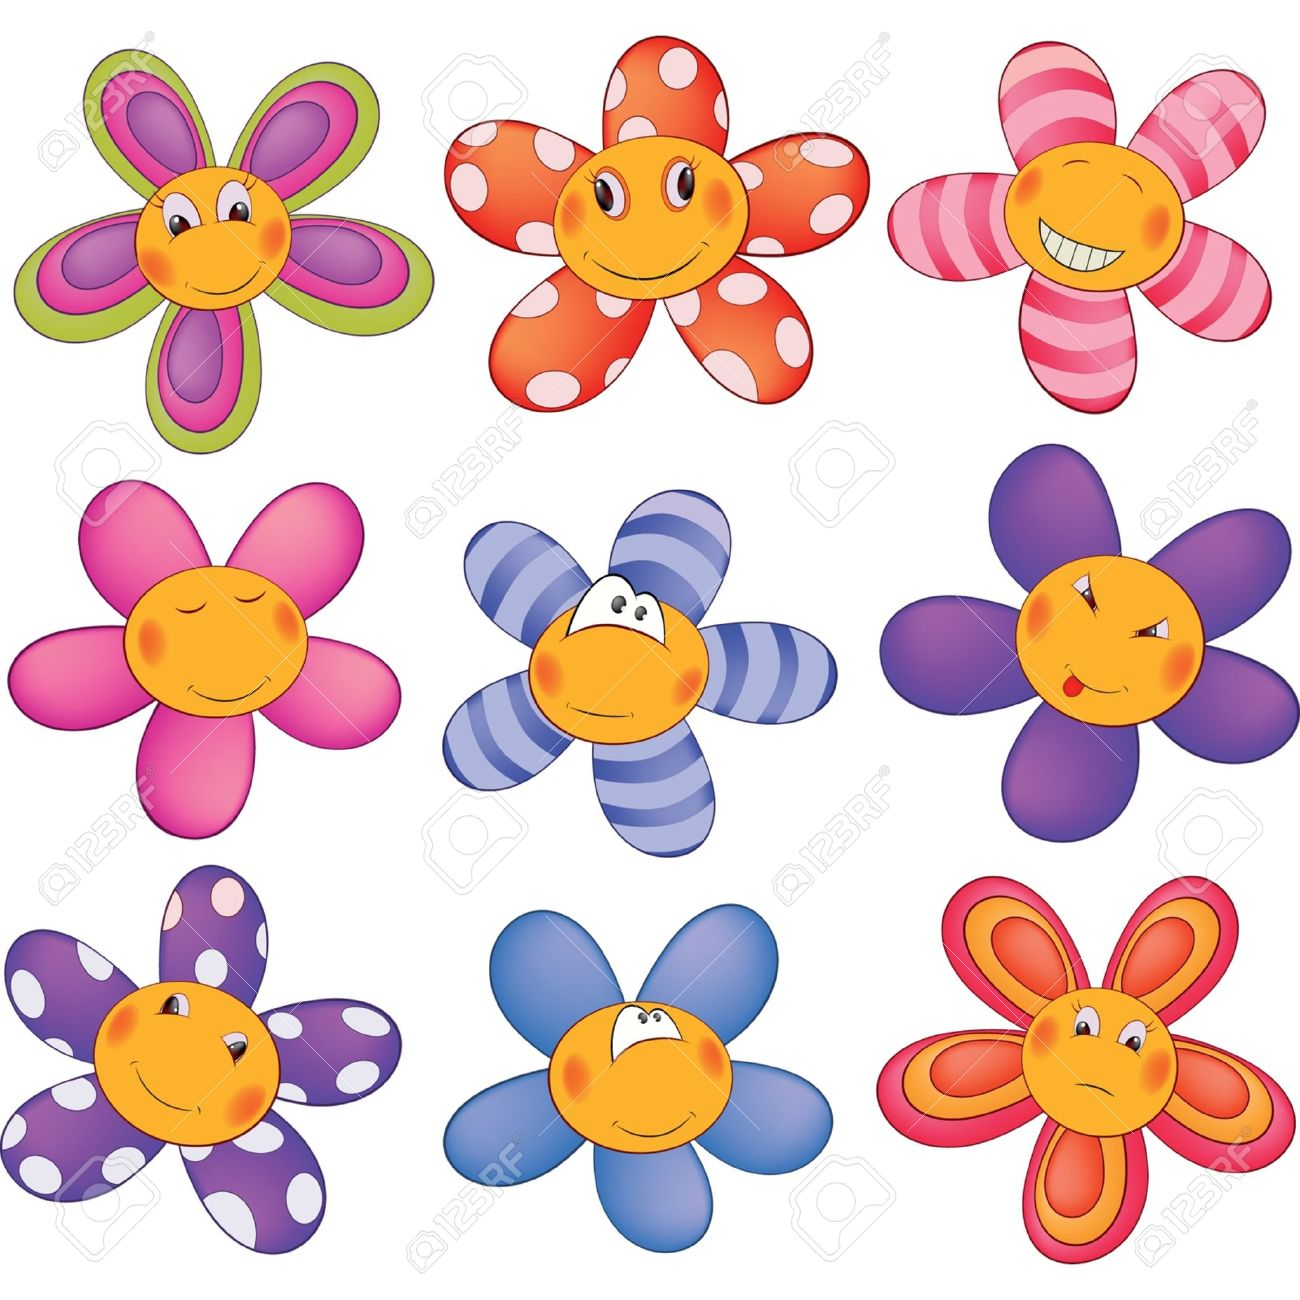 Small cartoon flower image black and white Cheerful Small Asterisks Cartoon Royalty Free Cliparts, Vectors ... image black and white